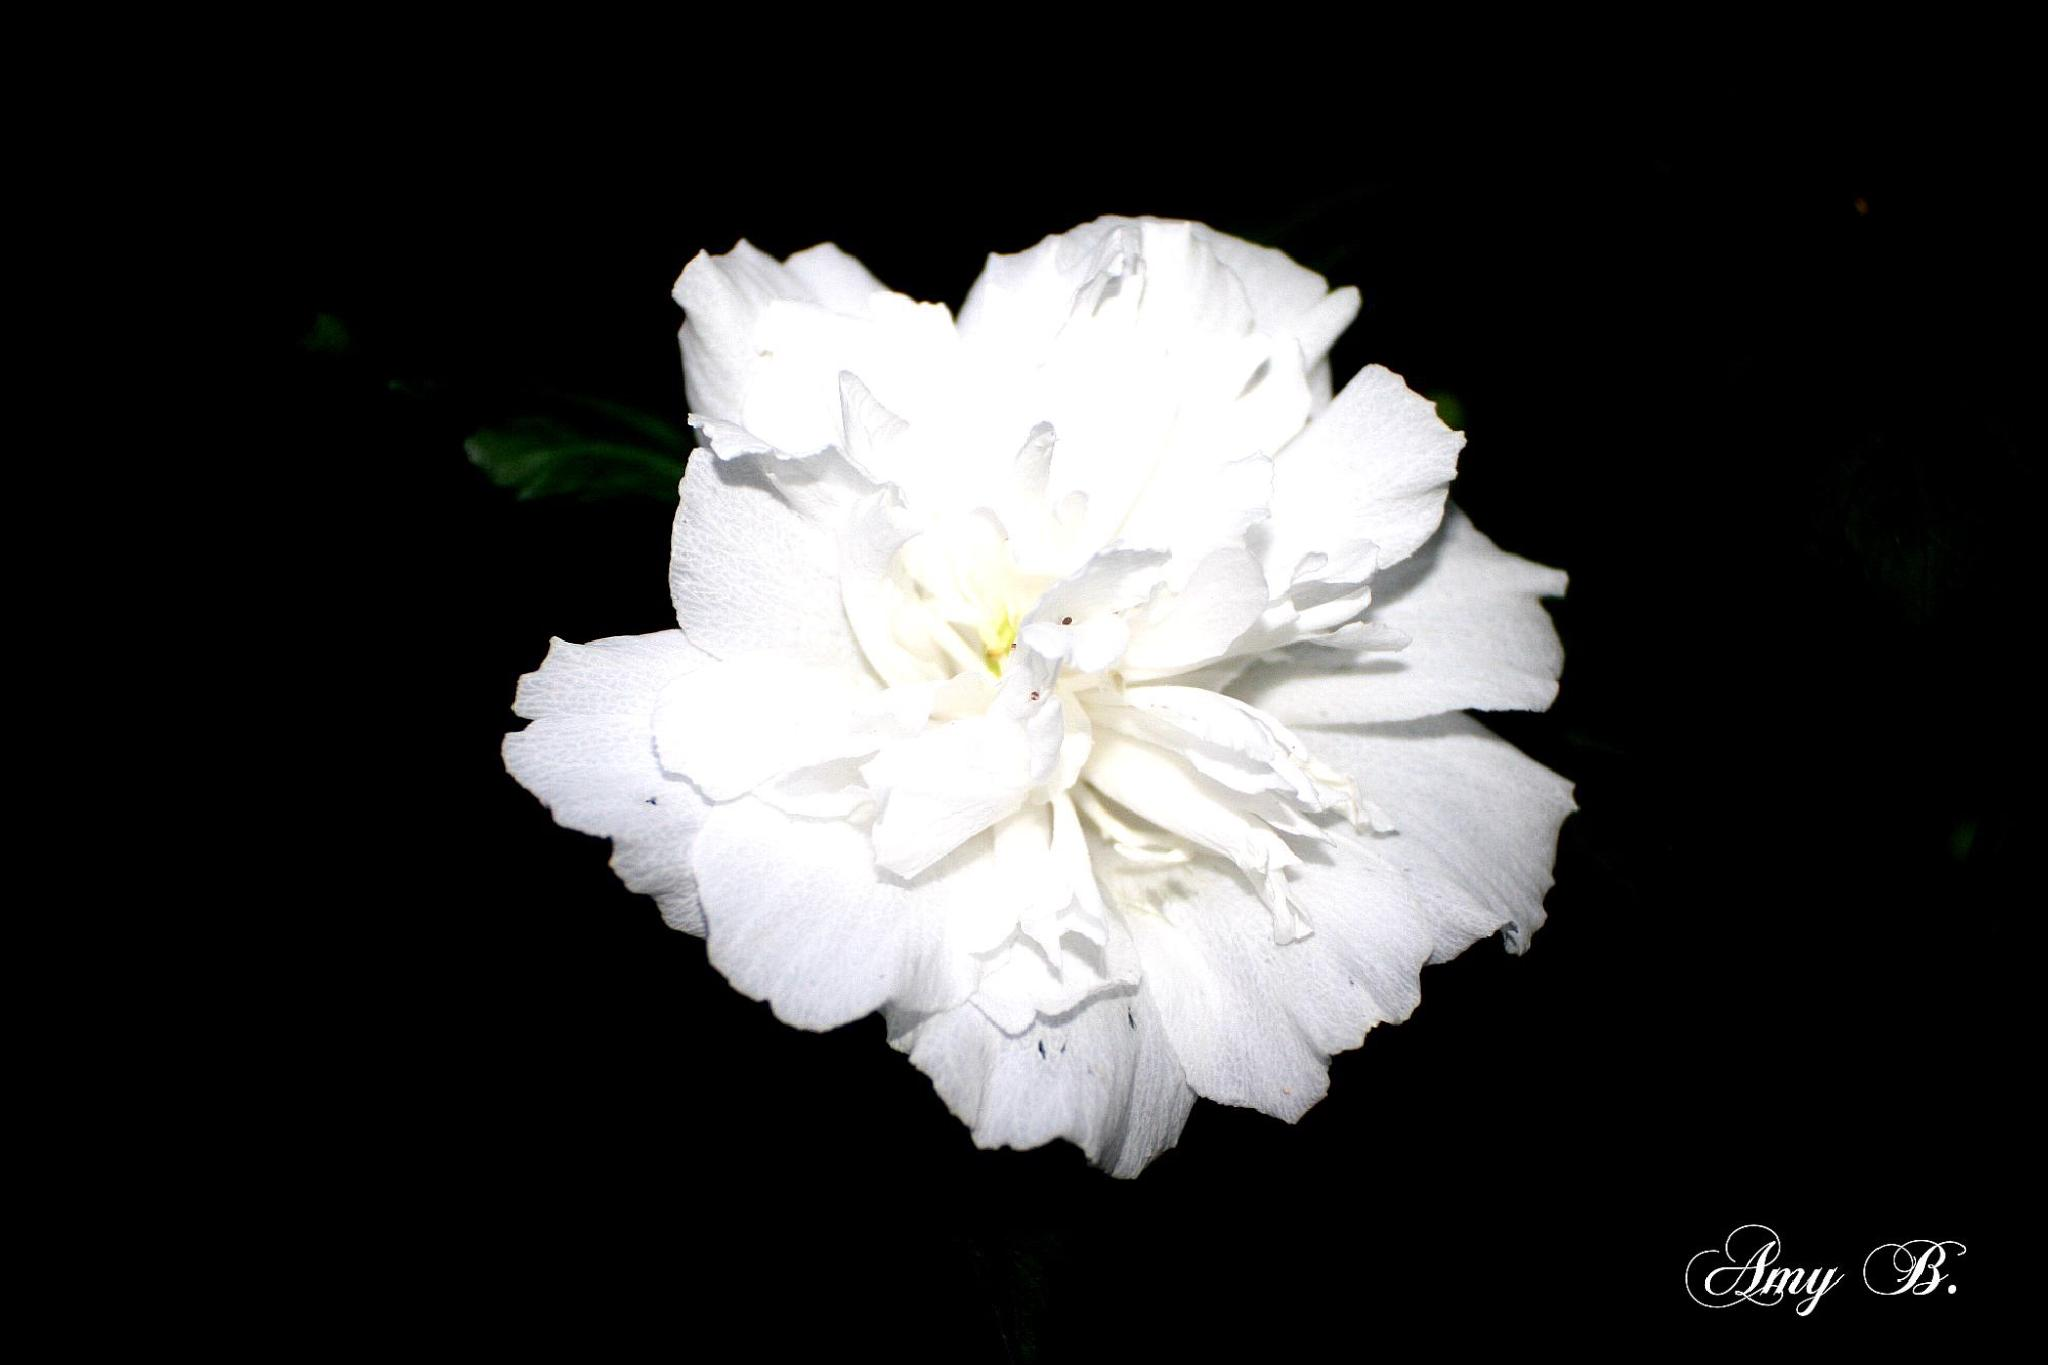 White flower at night by amy.conger.9